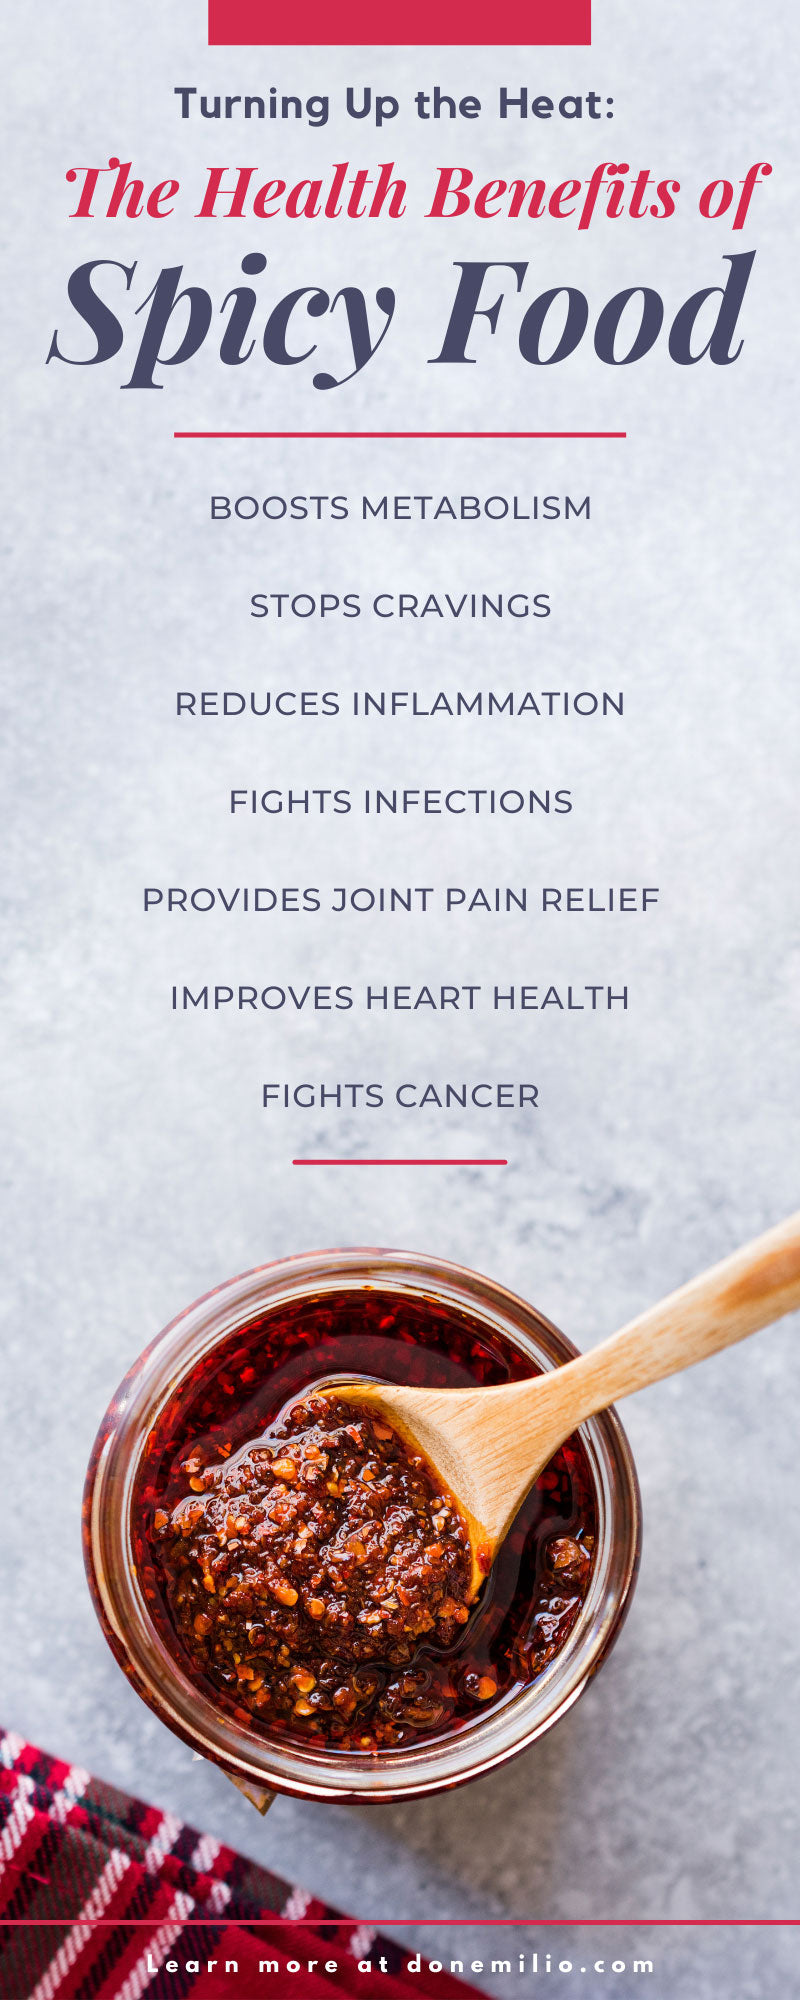 Turning Up the Heat: The Health Benefits of Spicy Food